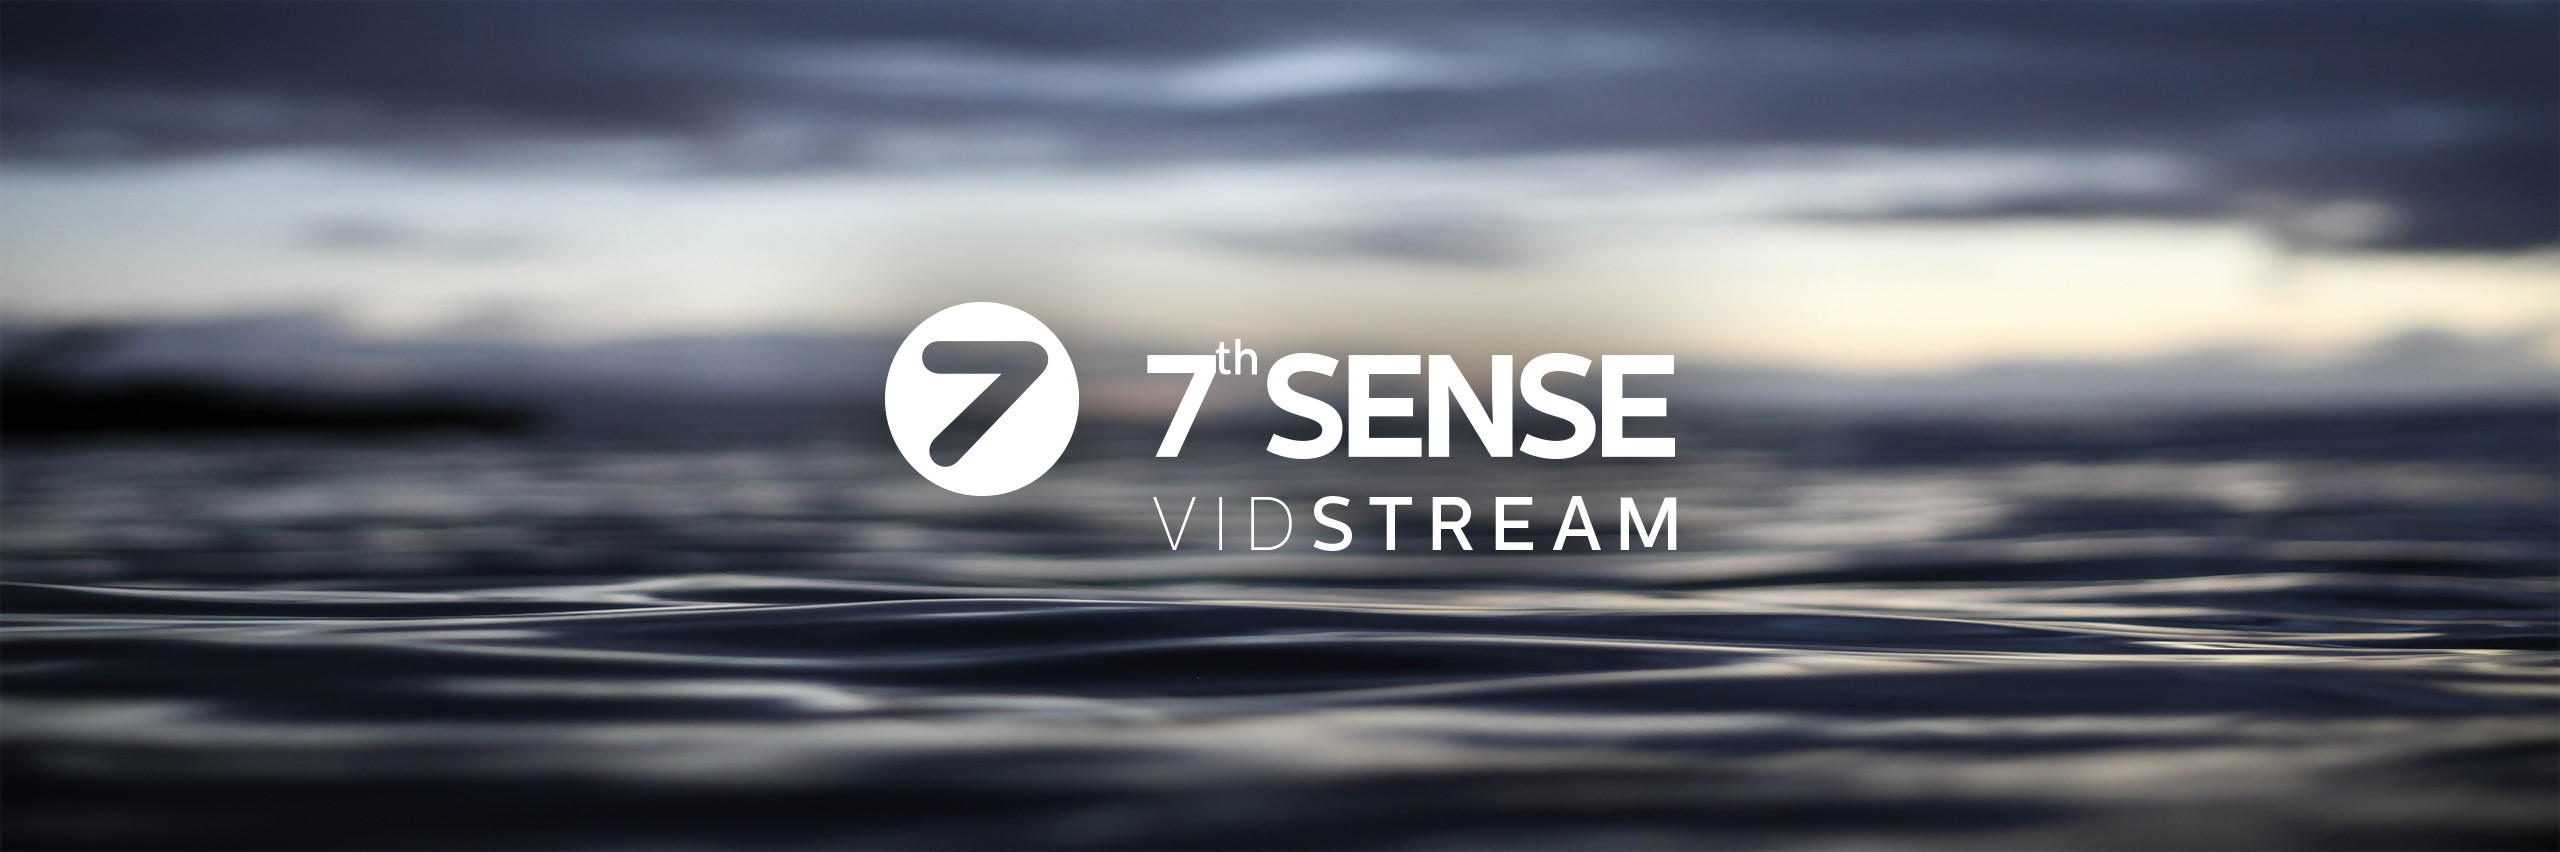 VidStream Channel 5